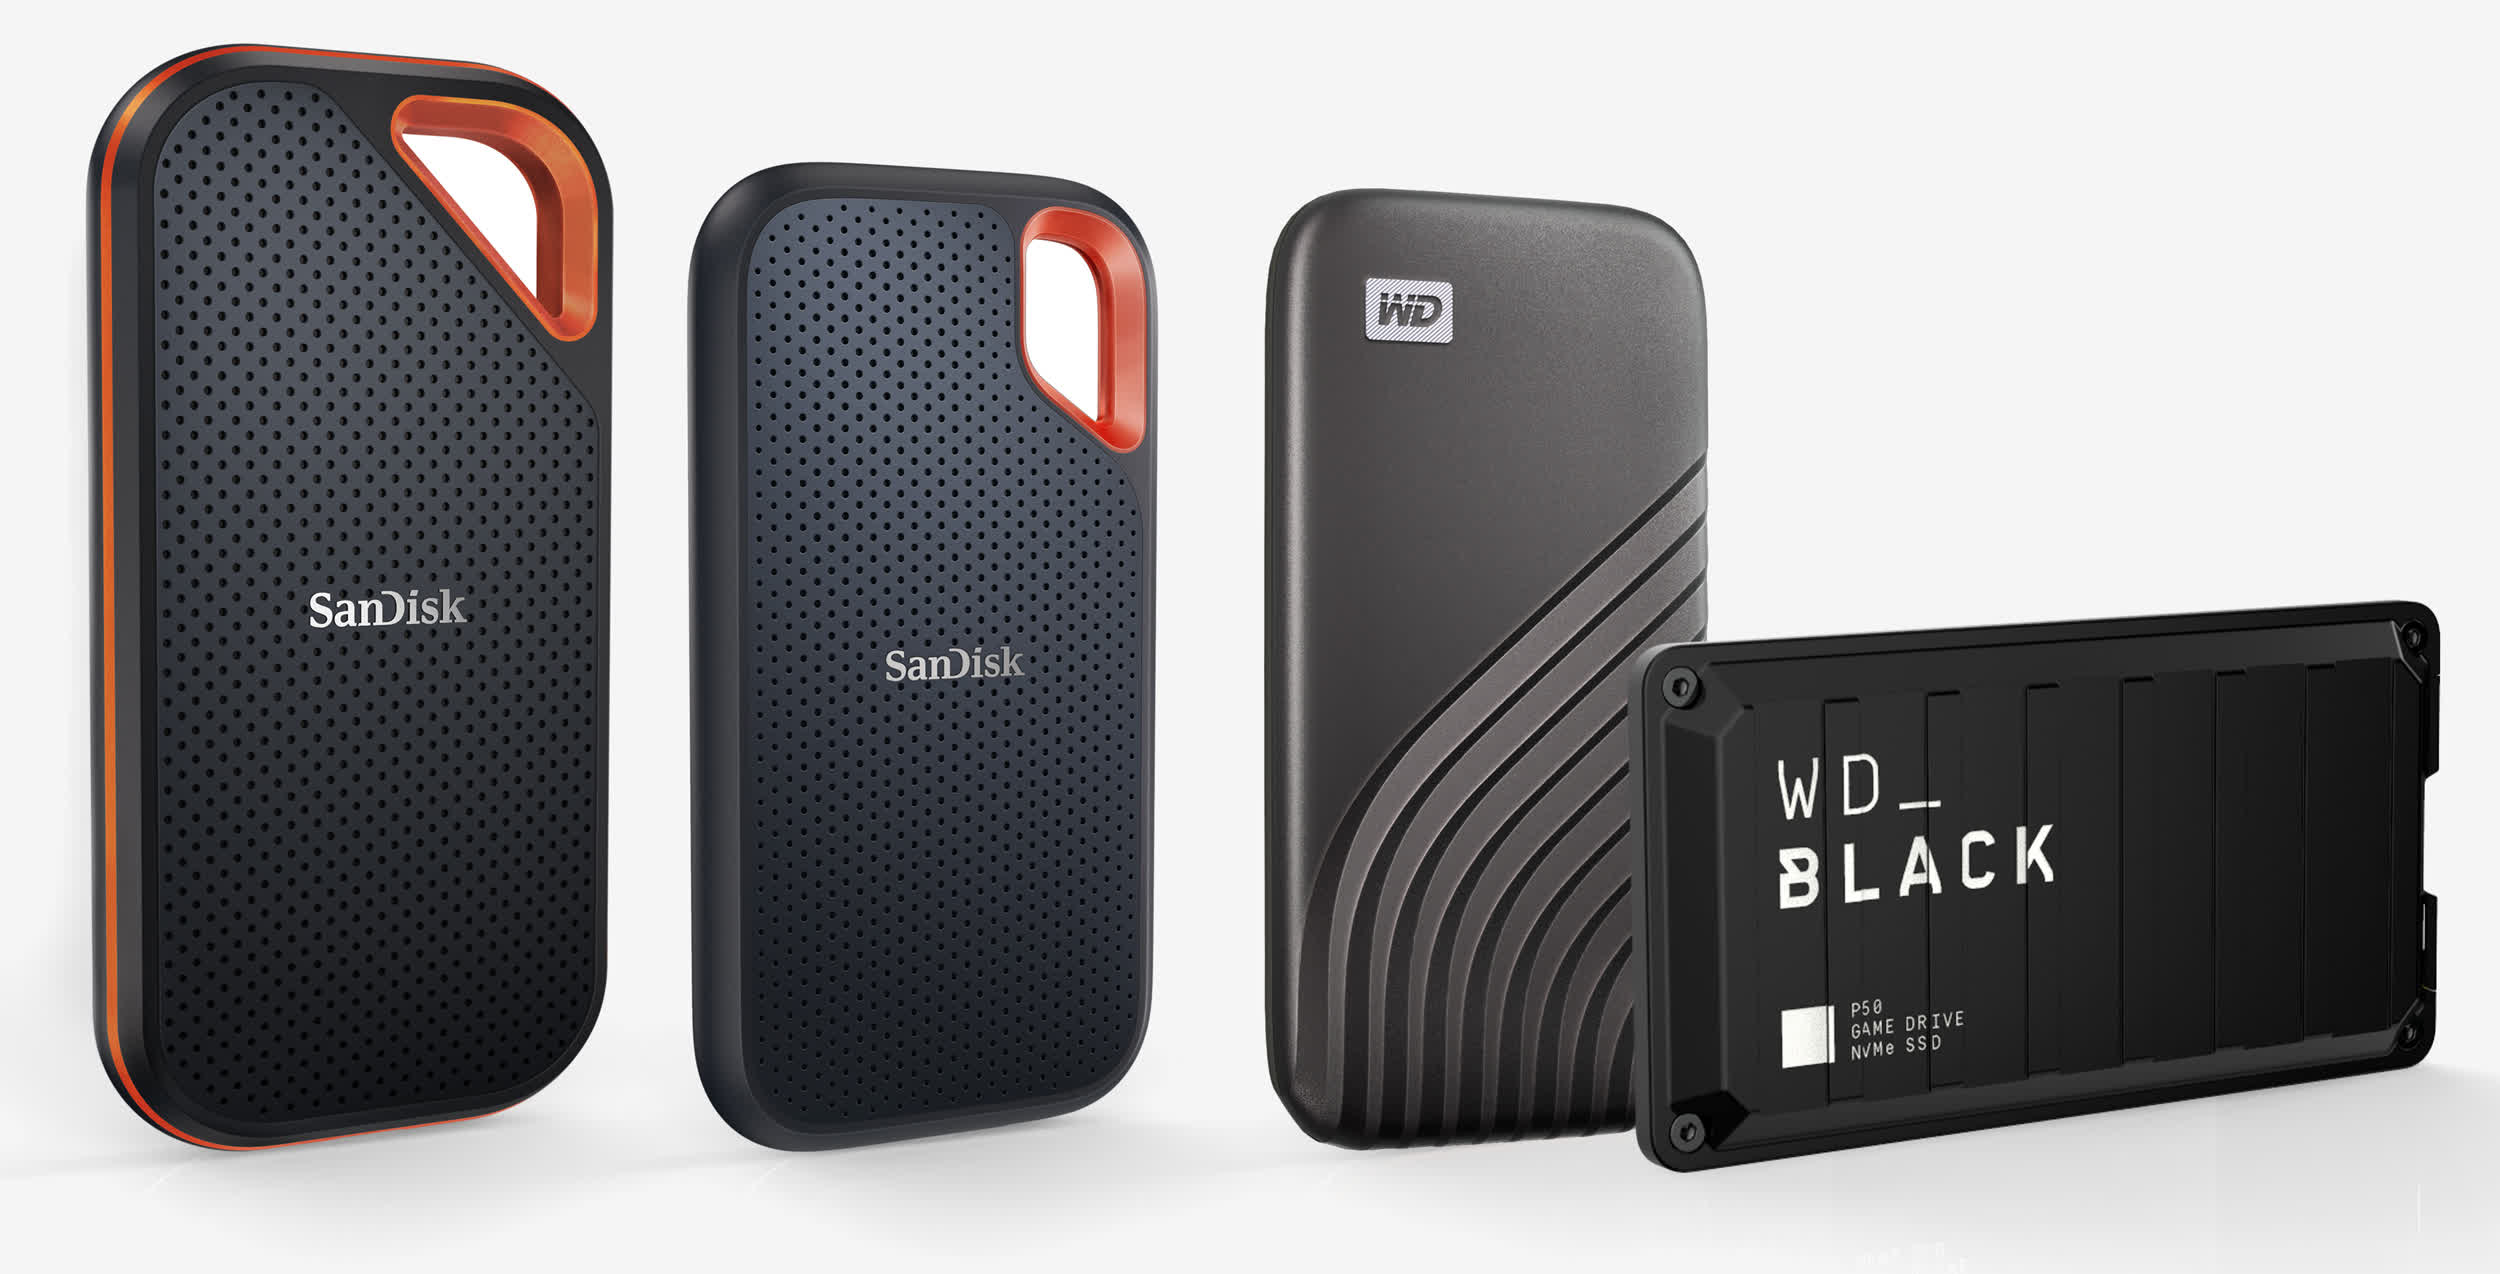 Western Digital adds 4TB options to its portable SSD lines